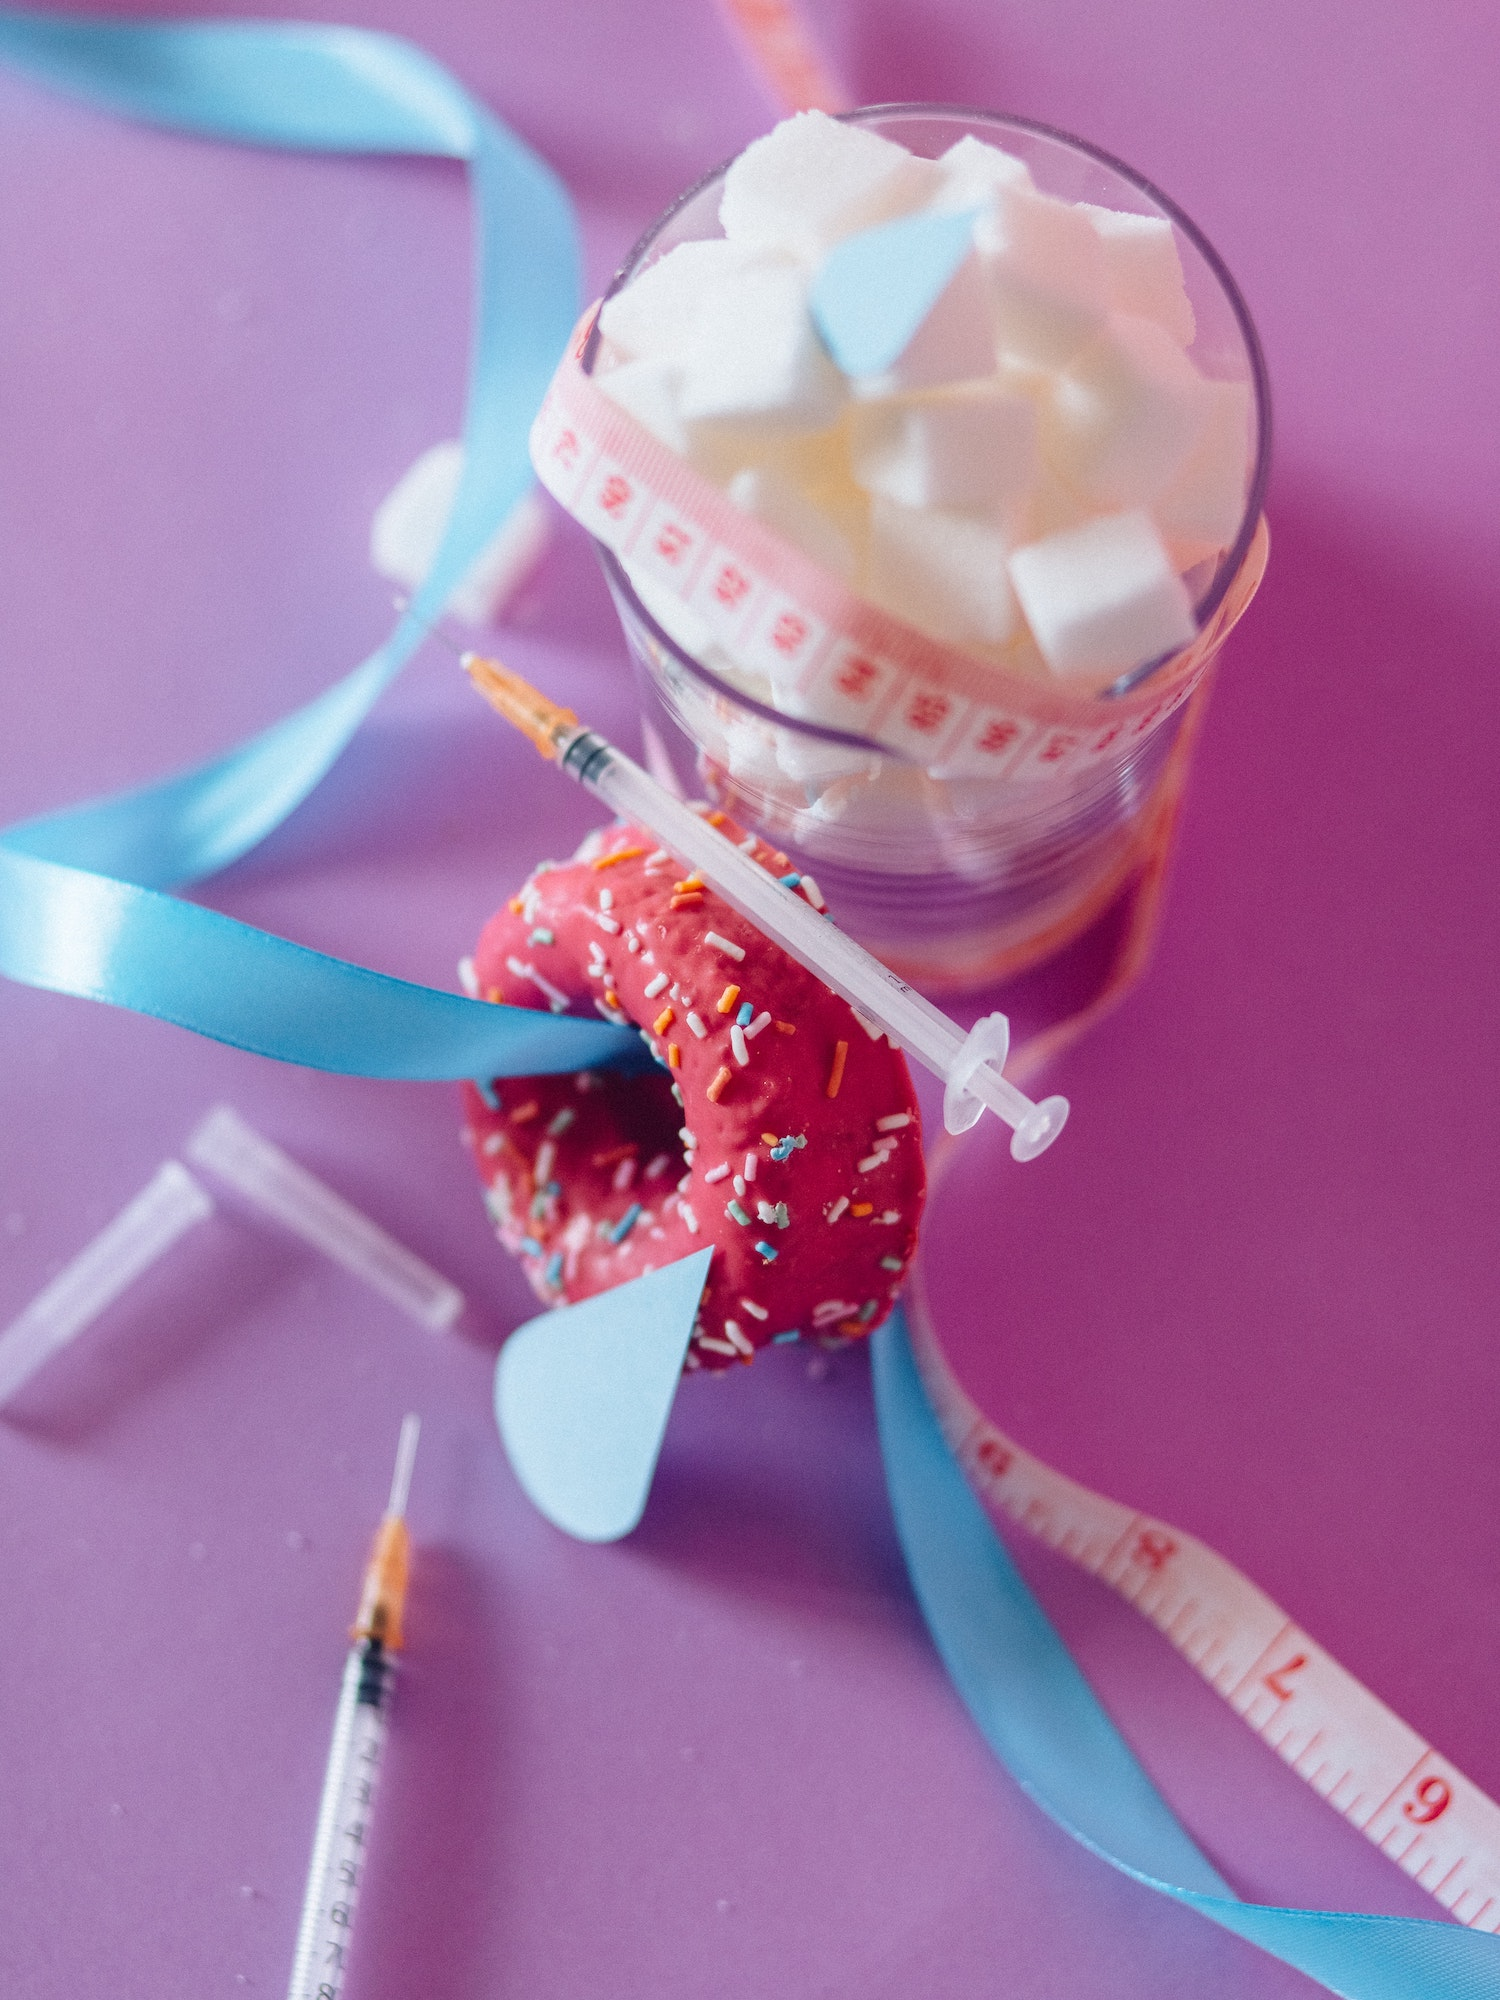 A cup of sugar, a donut, and insulin pens showing the dangers of sugar and diabetes